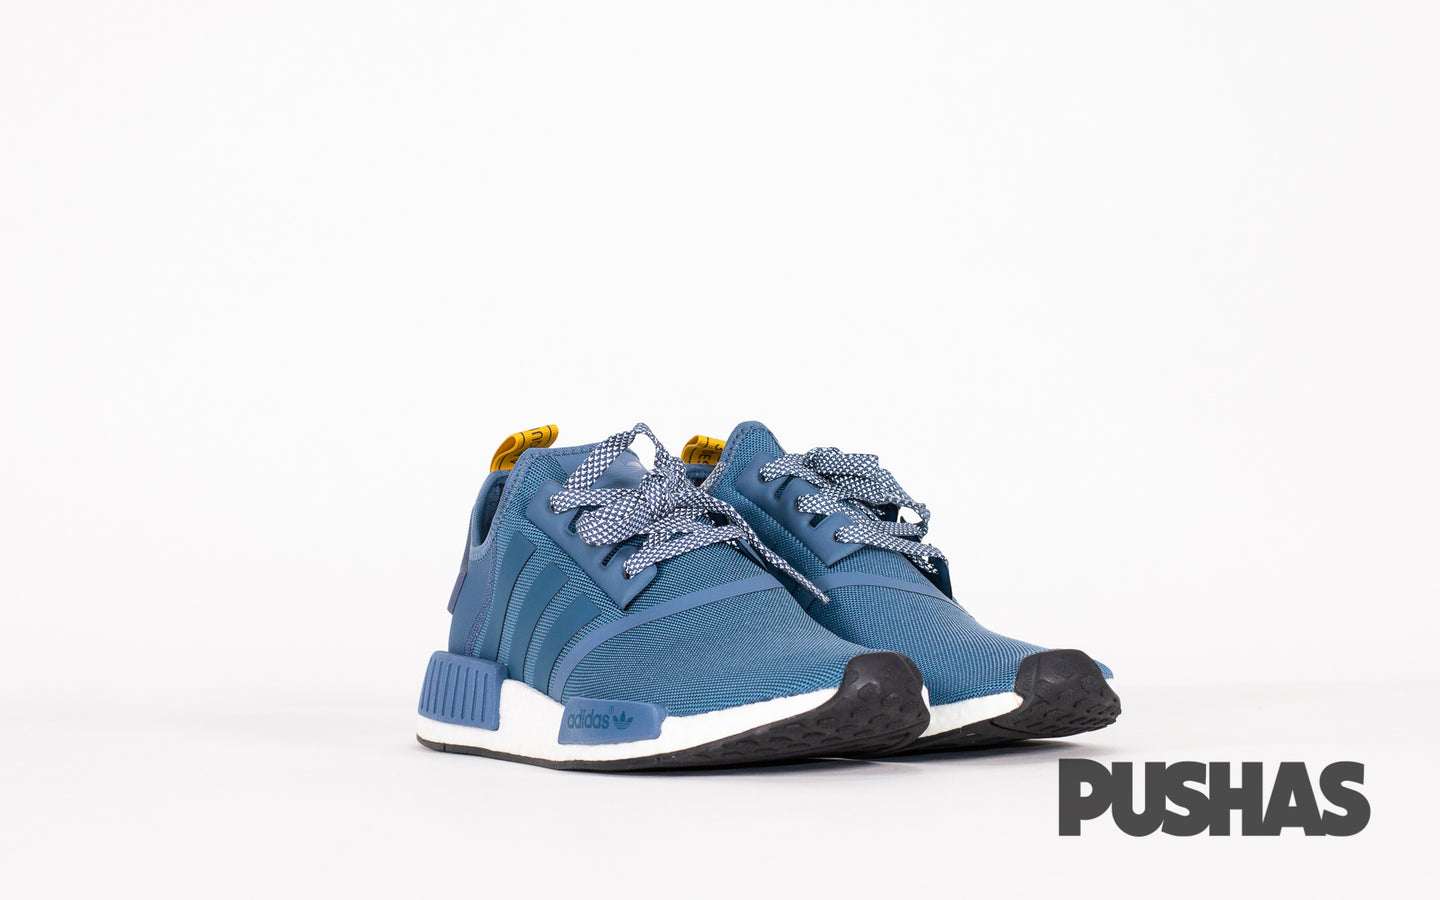 pushas-nike-adidas-NMD-R1-Tech-Ink